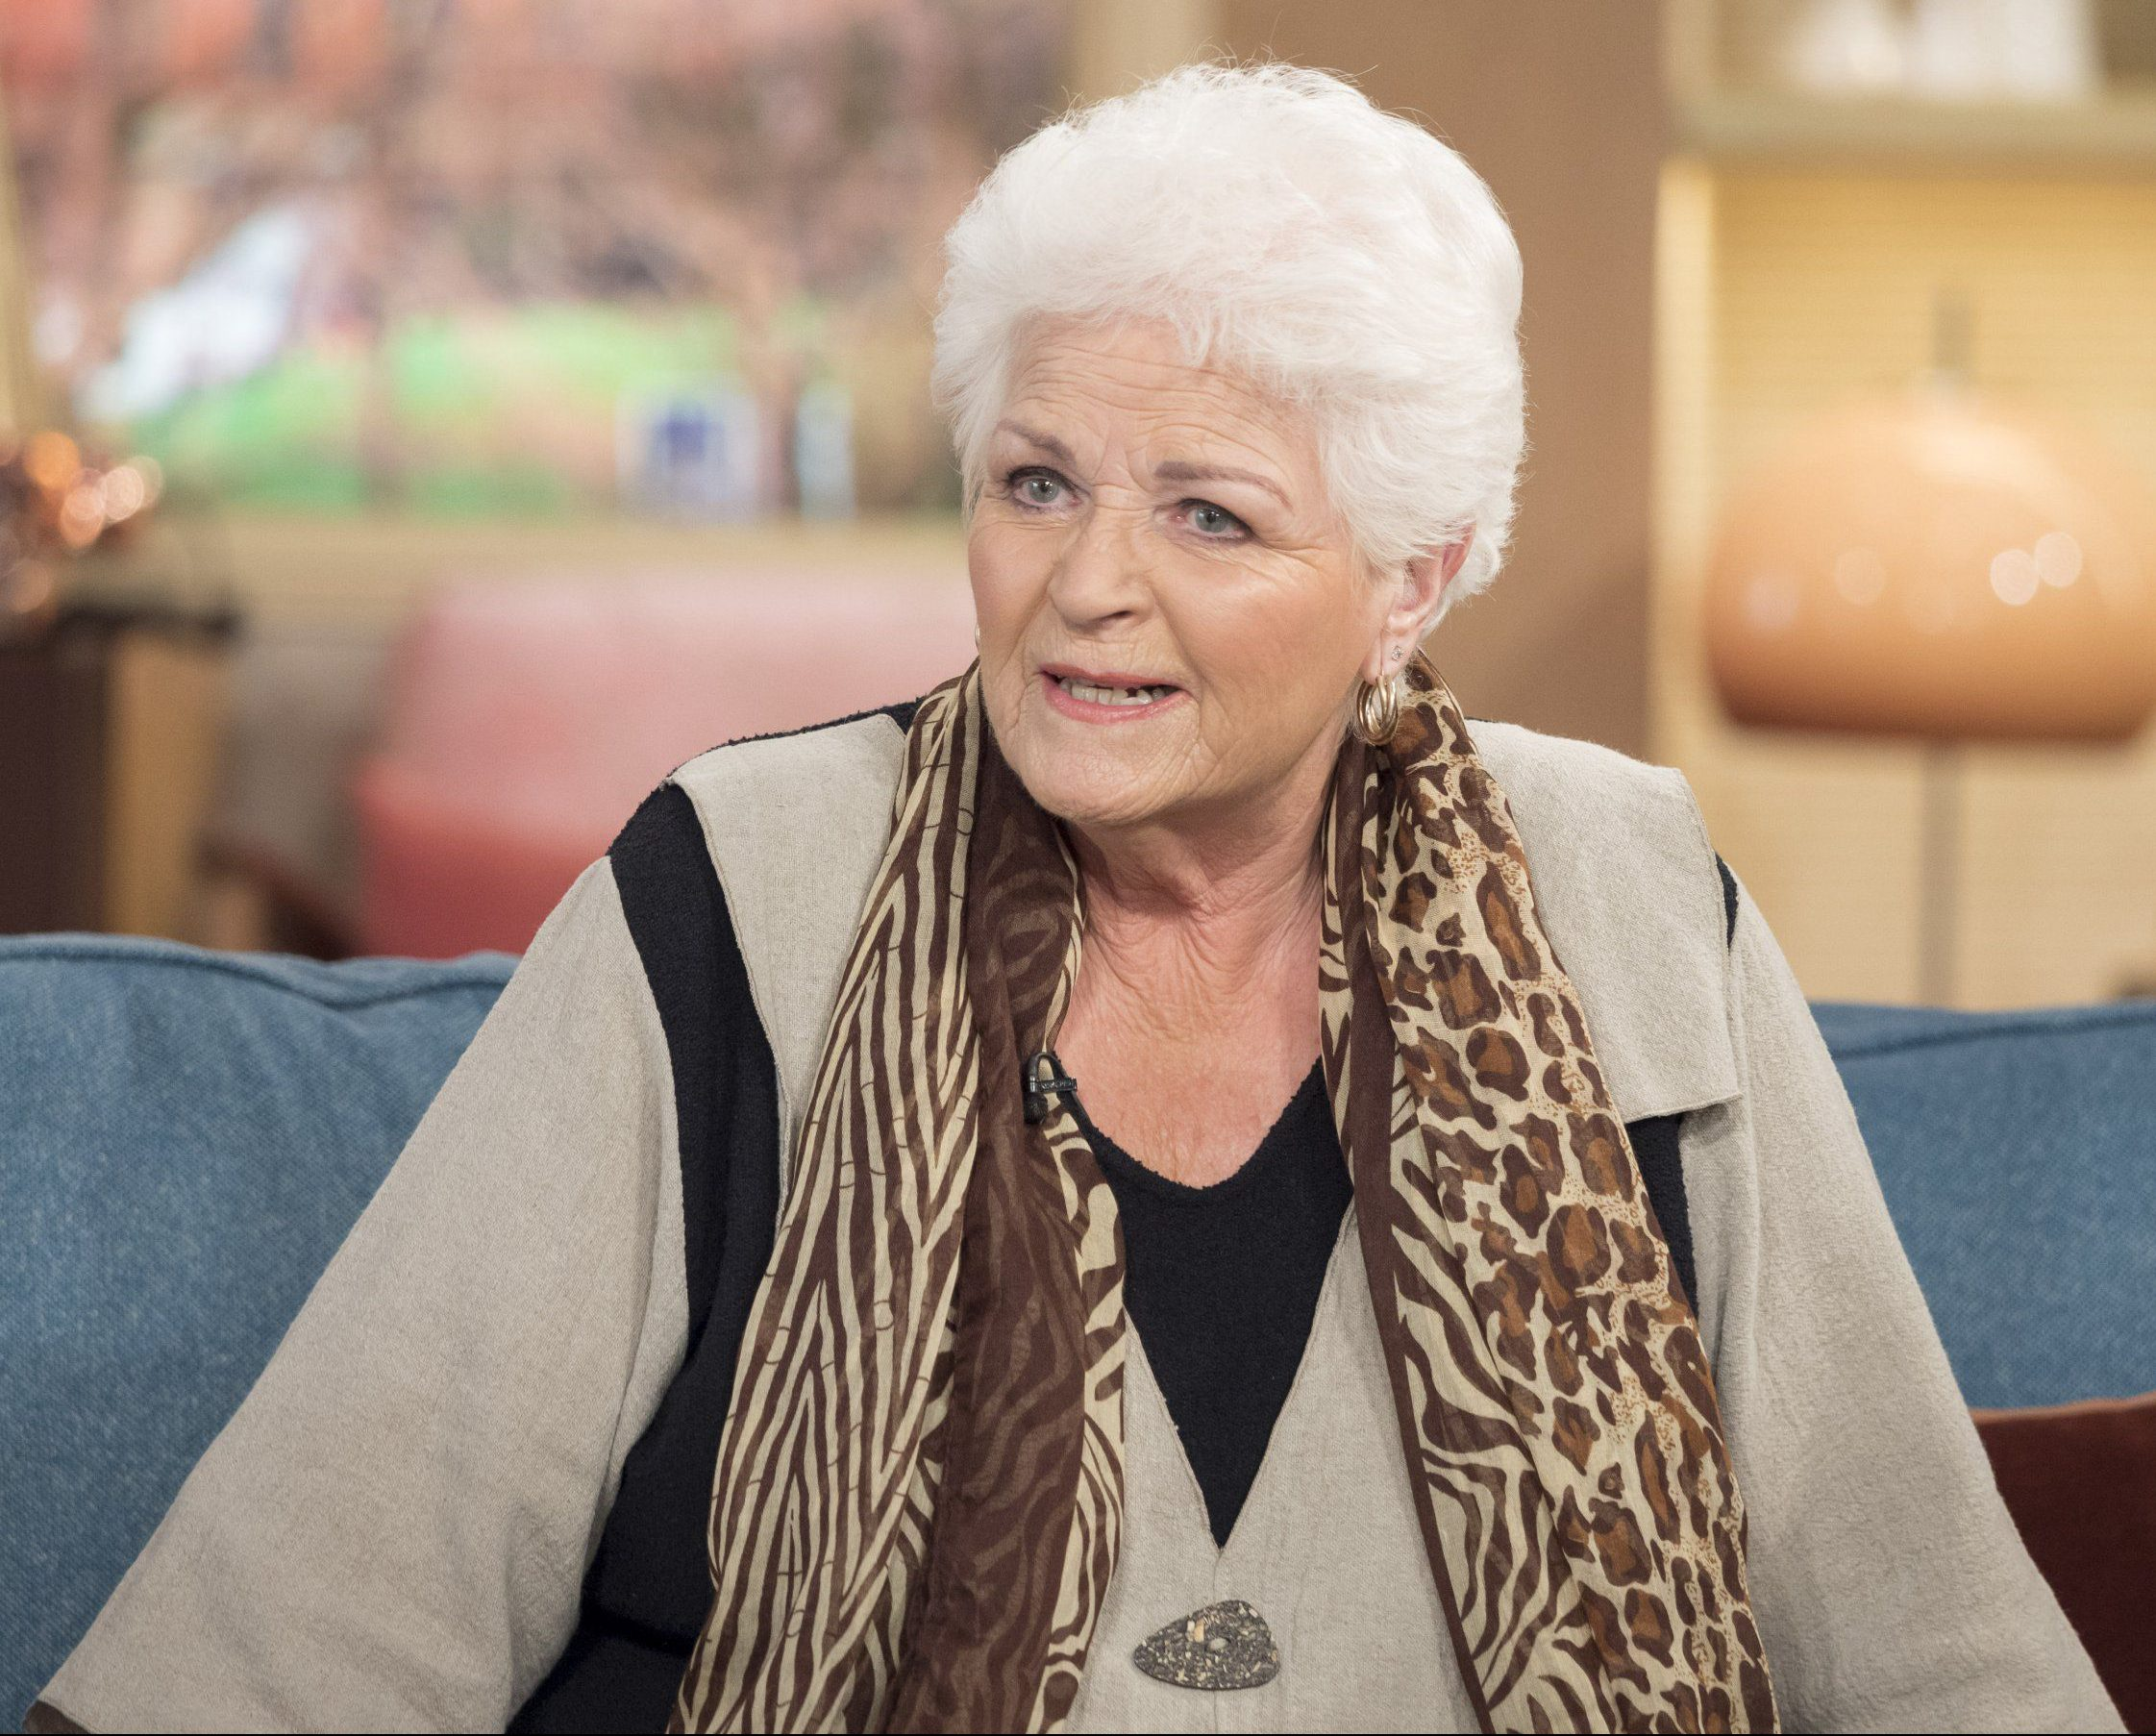 EastEnders' Pam St Clement reveals the bizarre incident that informed her performance as ghost Pat